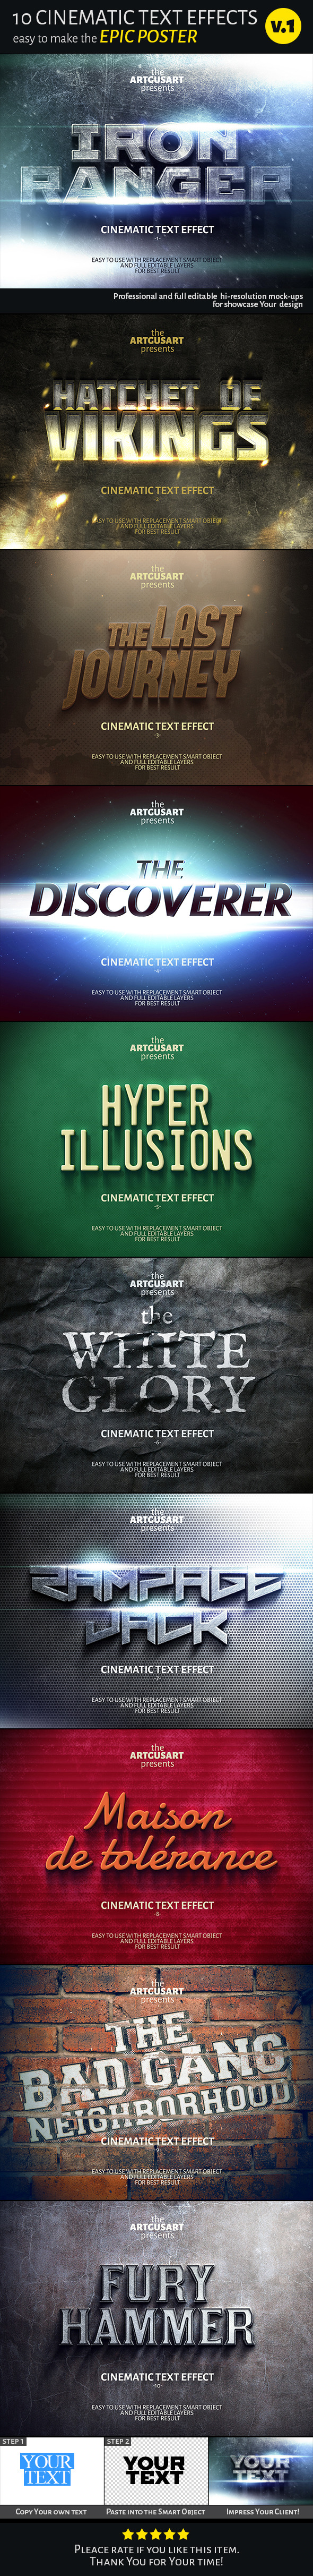 GraphicRiver 10 Cinematic Text Effects v.1 10943112